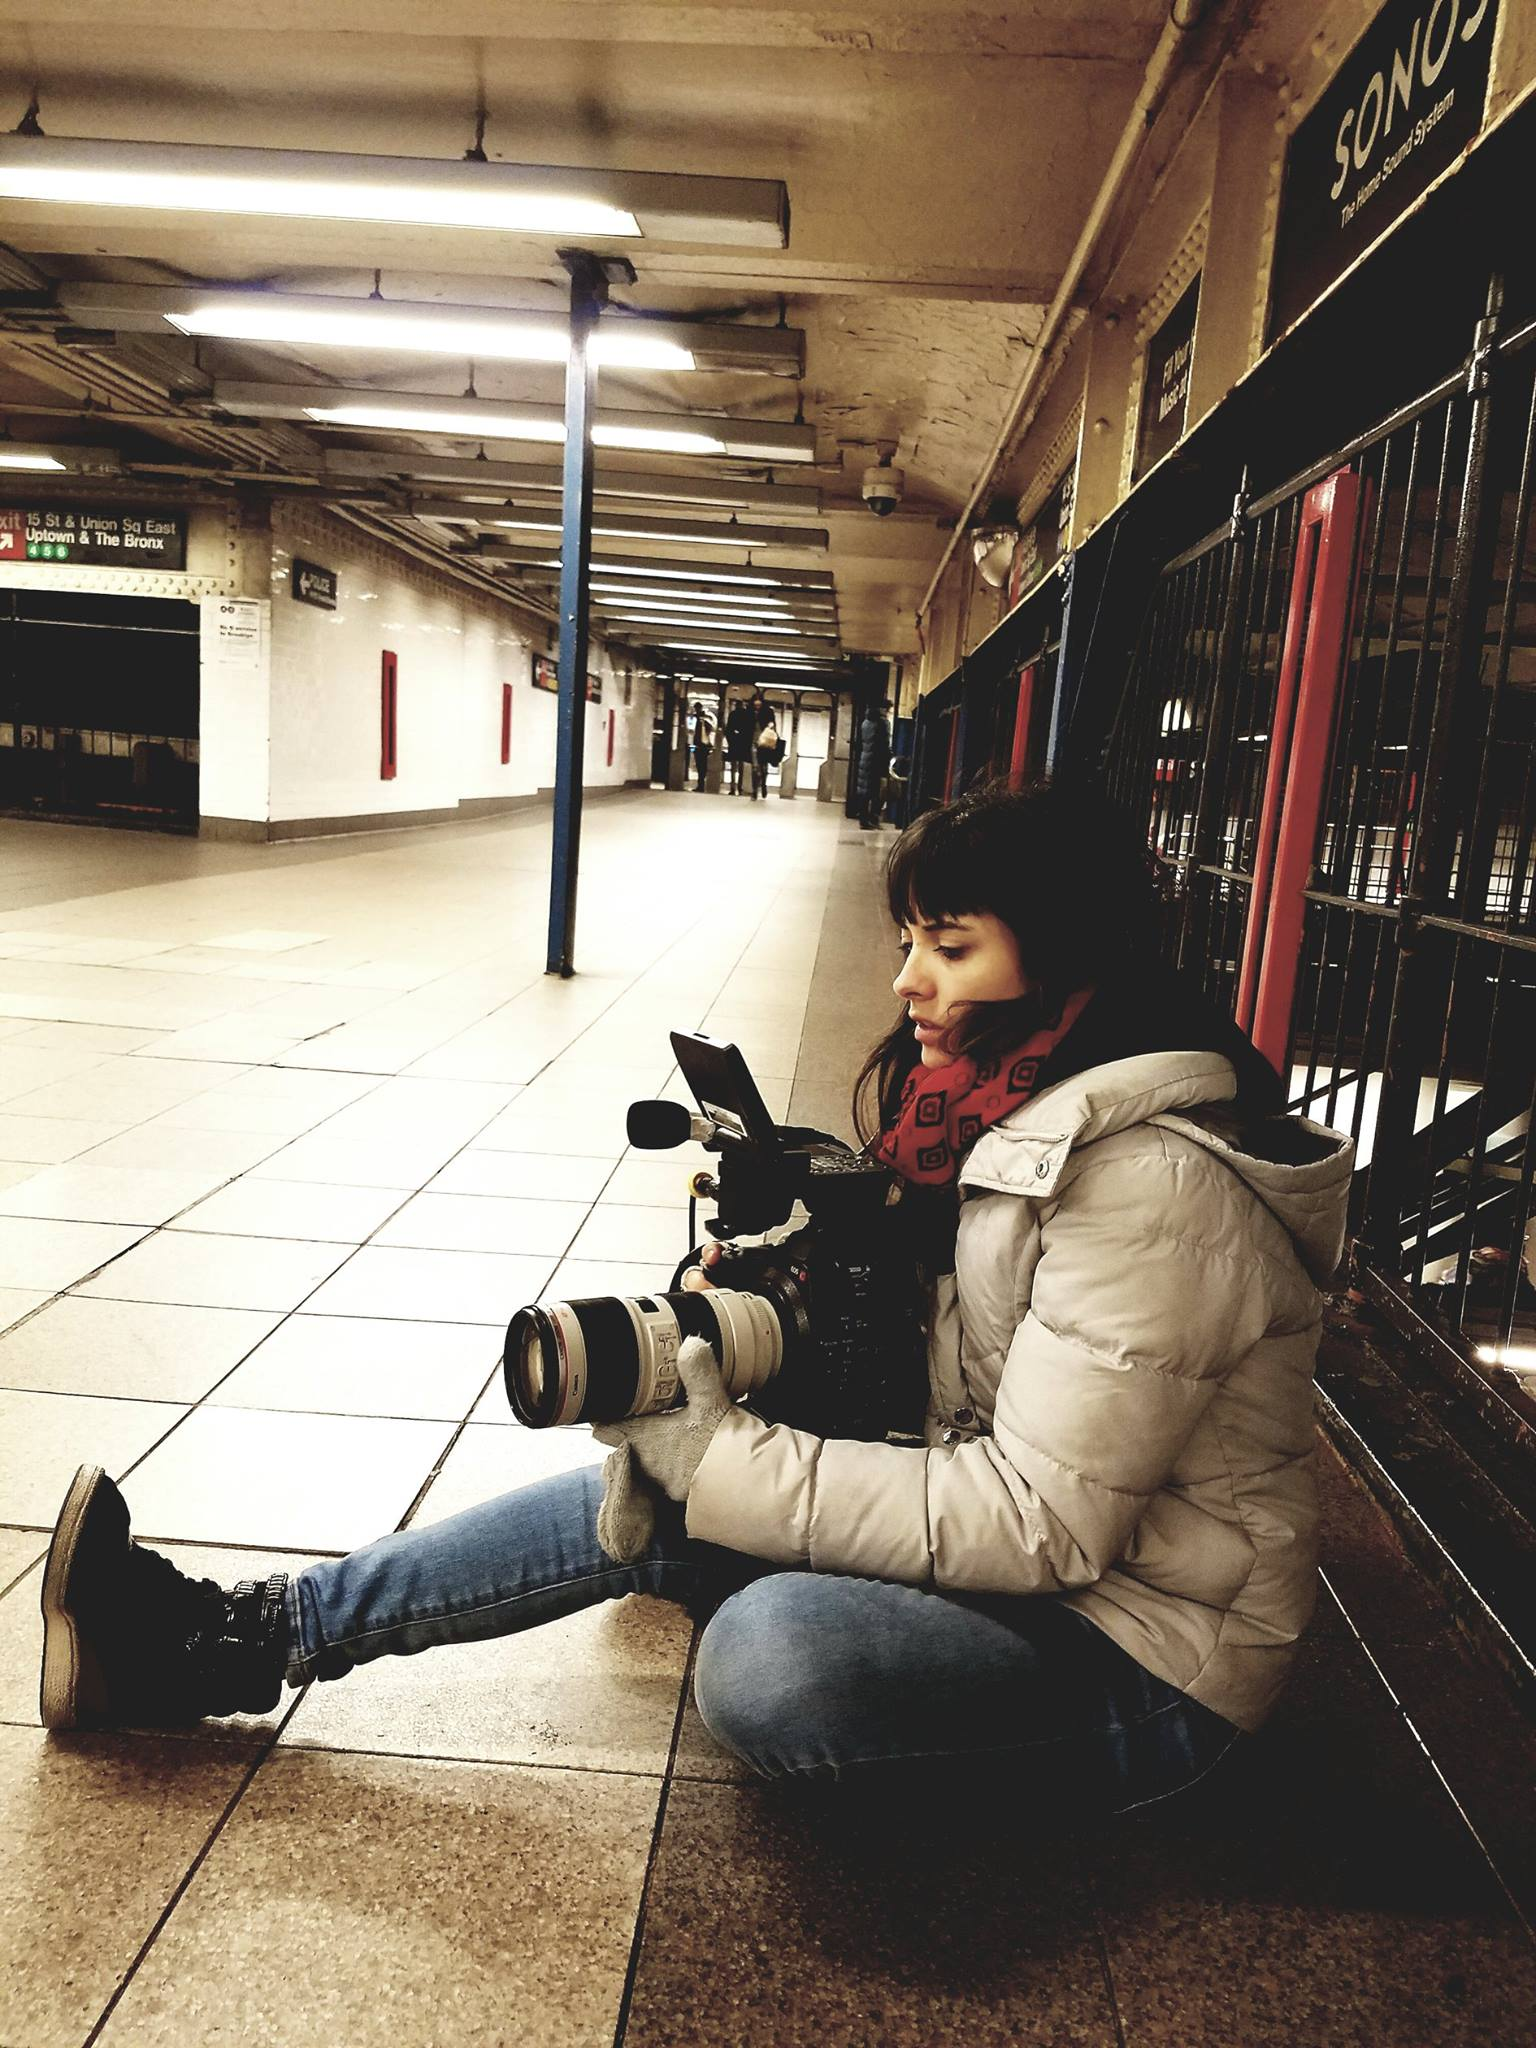 Filming in NYC Metro